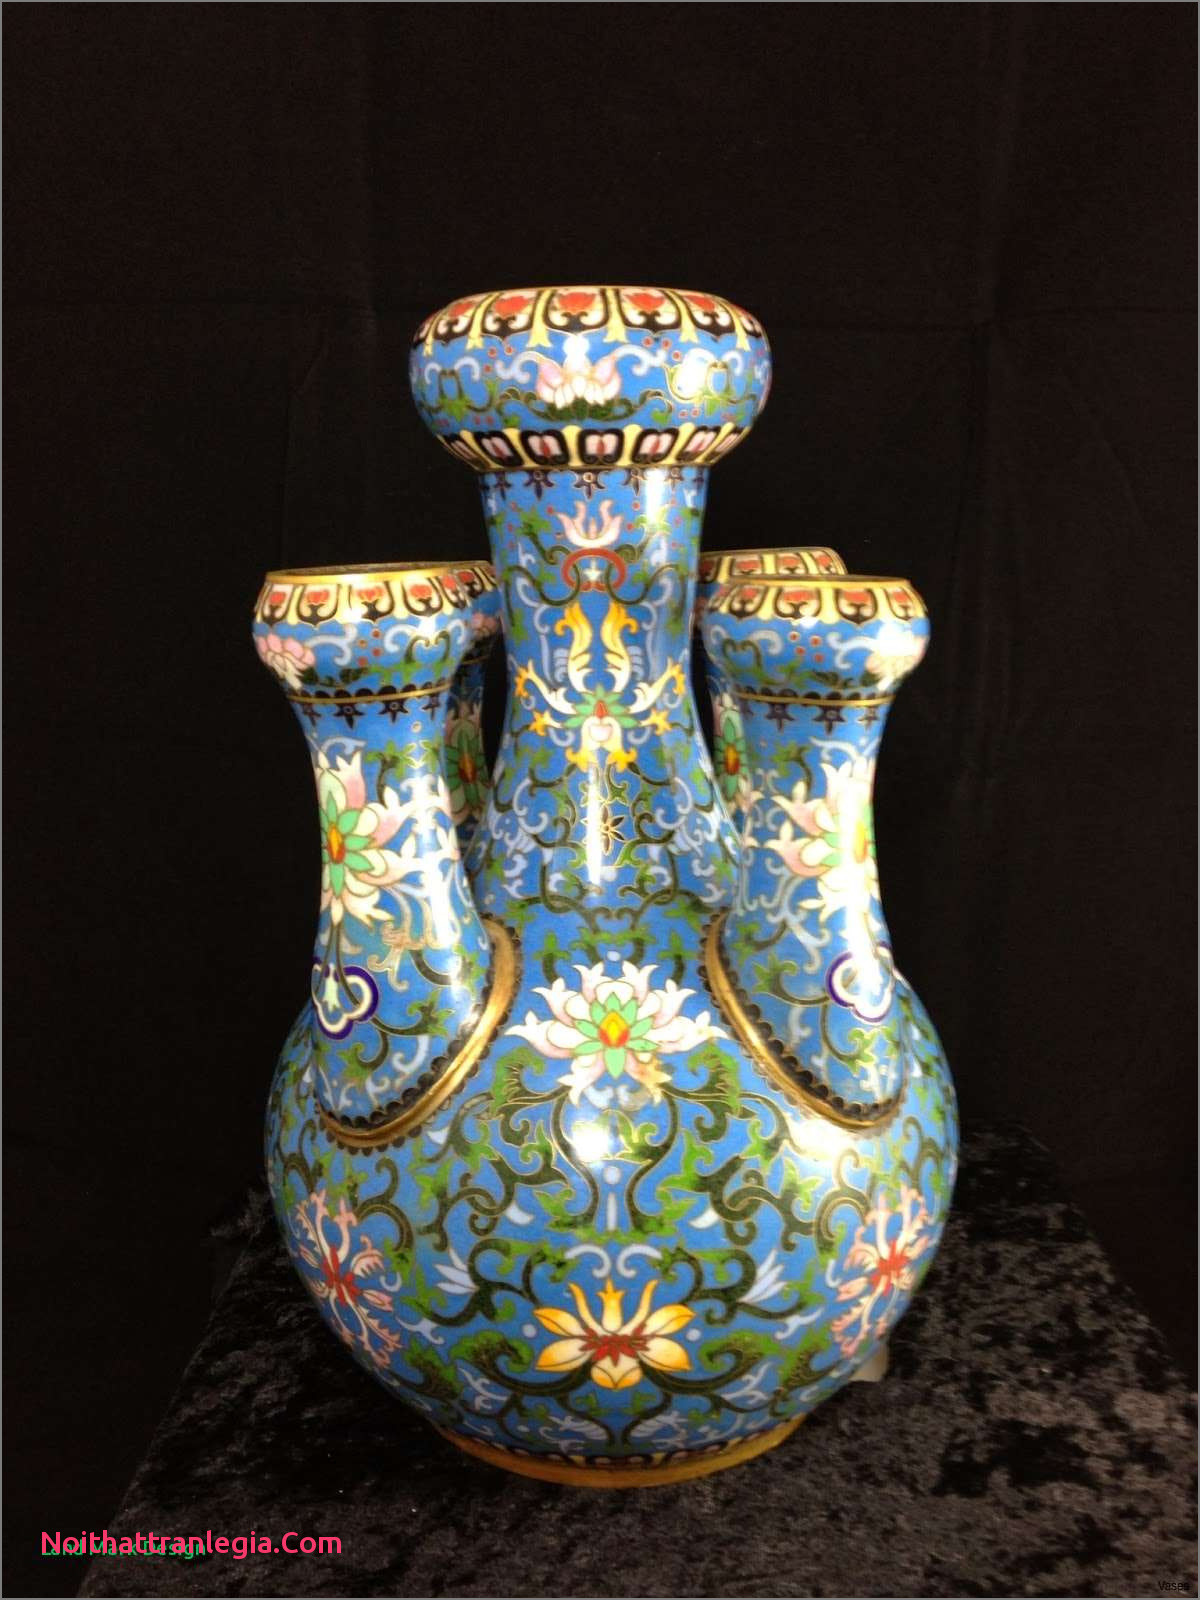 antique cloisonne vase value of 20 chinese antique vase noithattranlegia vases design with regard to 213 1h vases antique asian the increased trade of chinese ware during 16th century has significantly